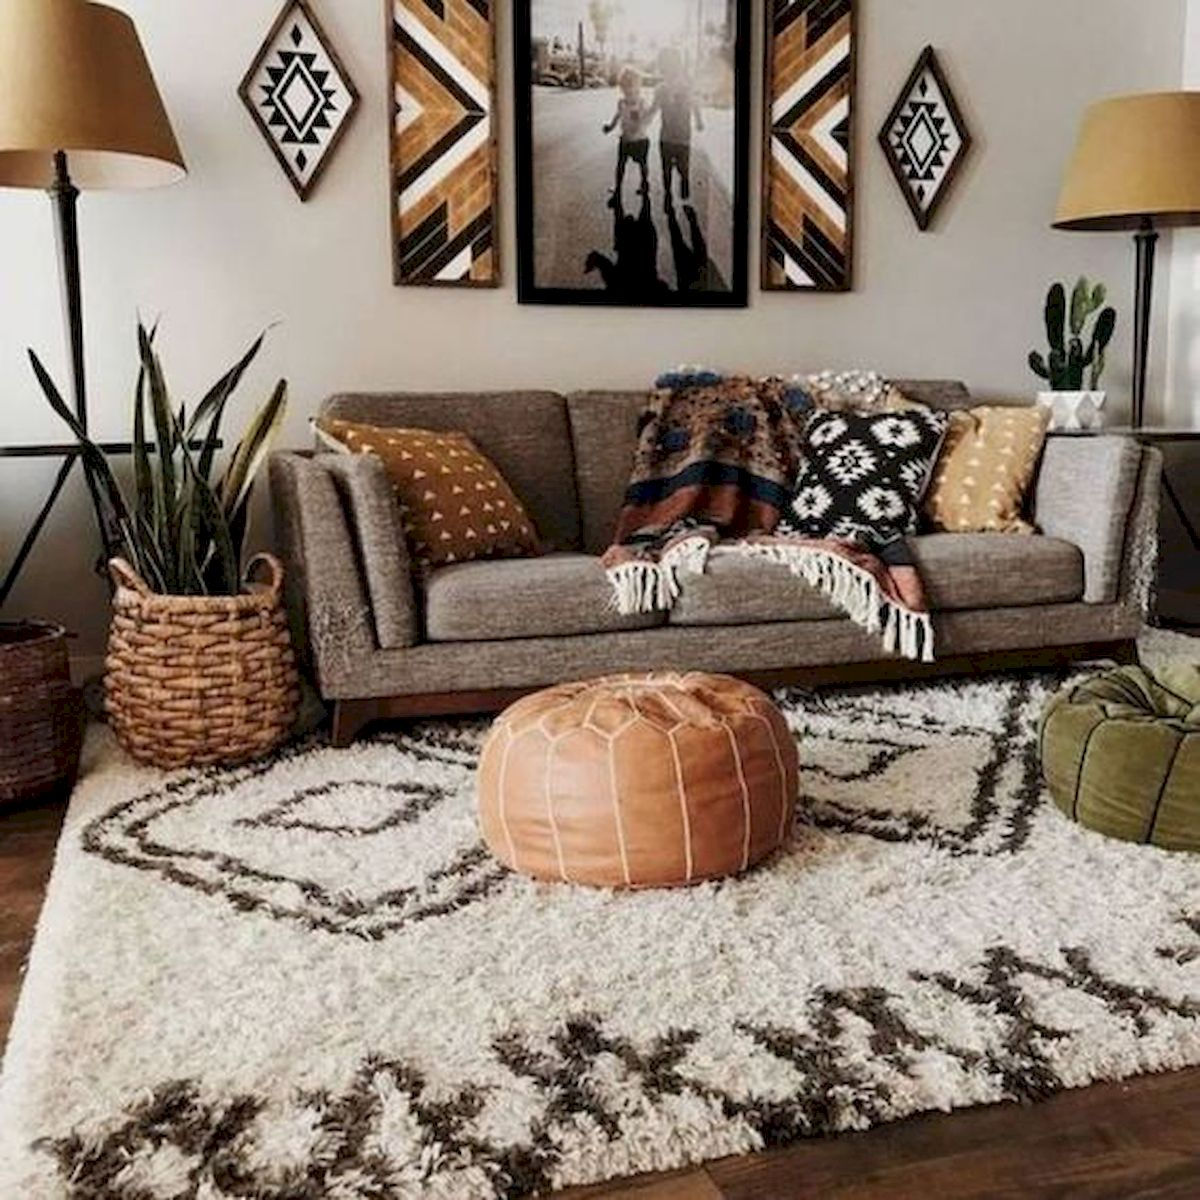 55 Bohemian Living Room Decor Ideas (45)